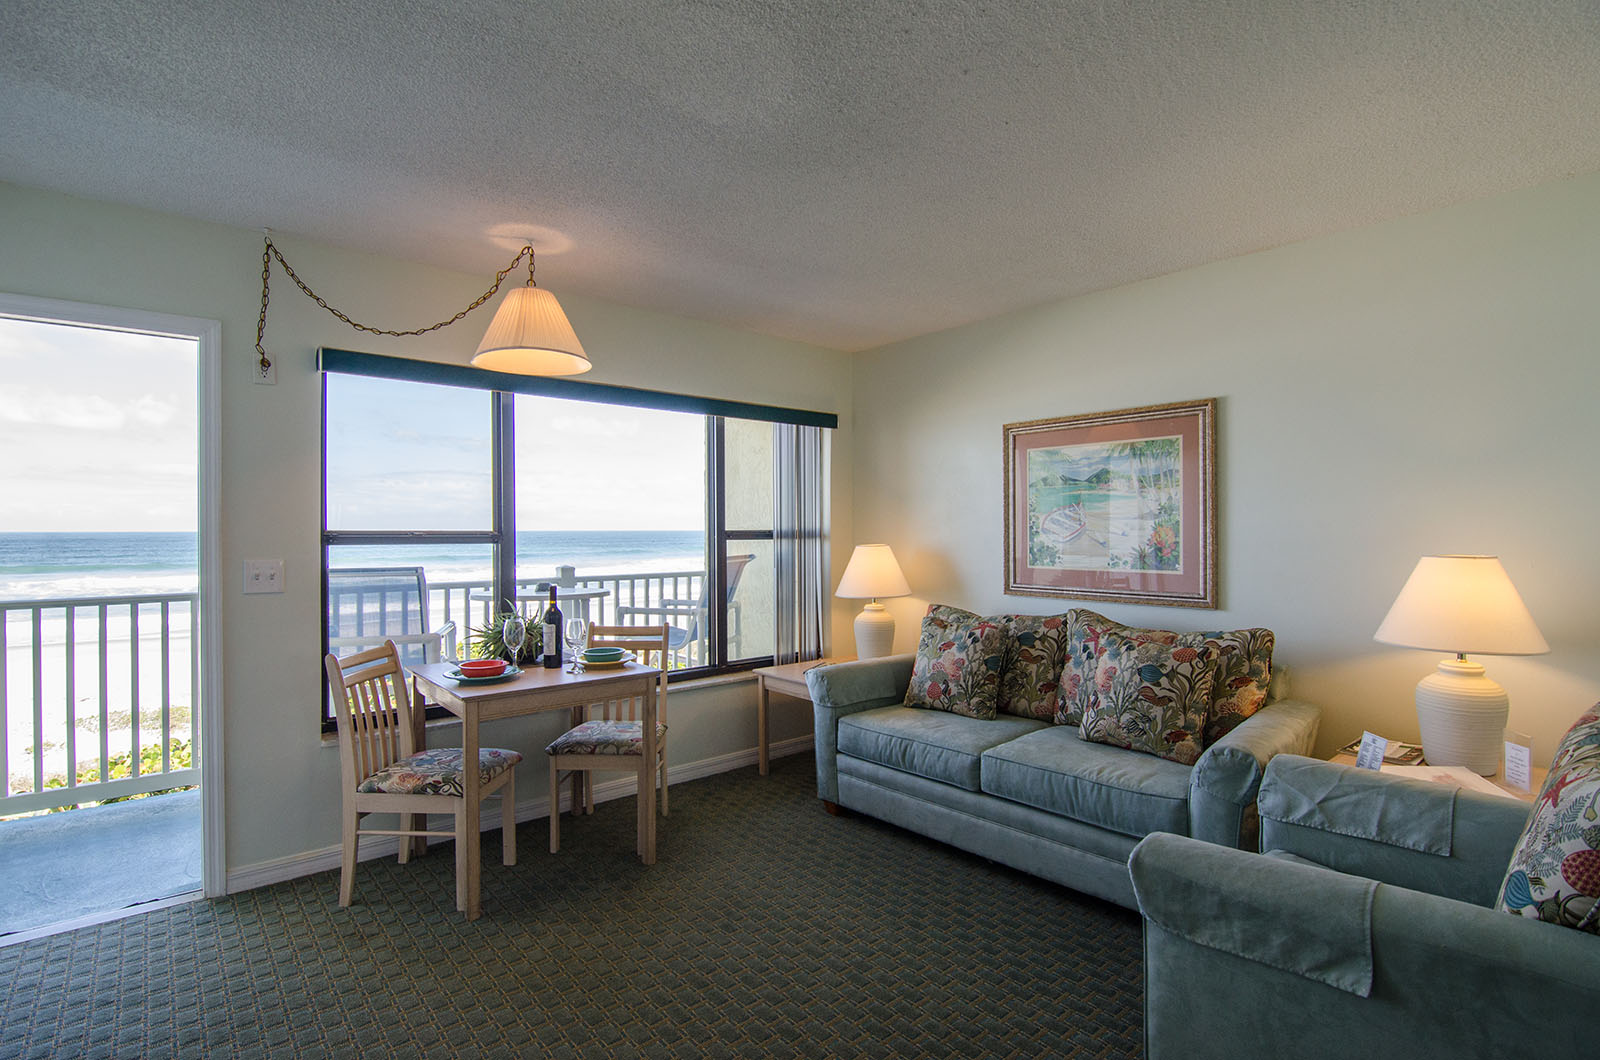 Separate living rooms at Tuckaway Shores Suites